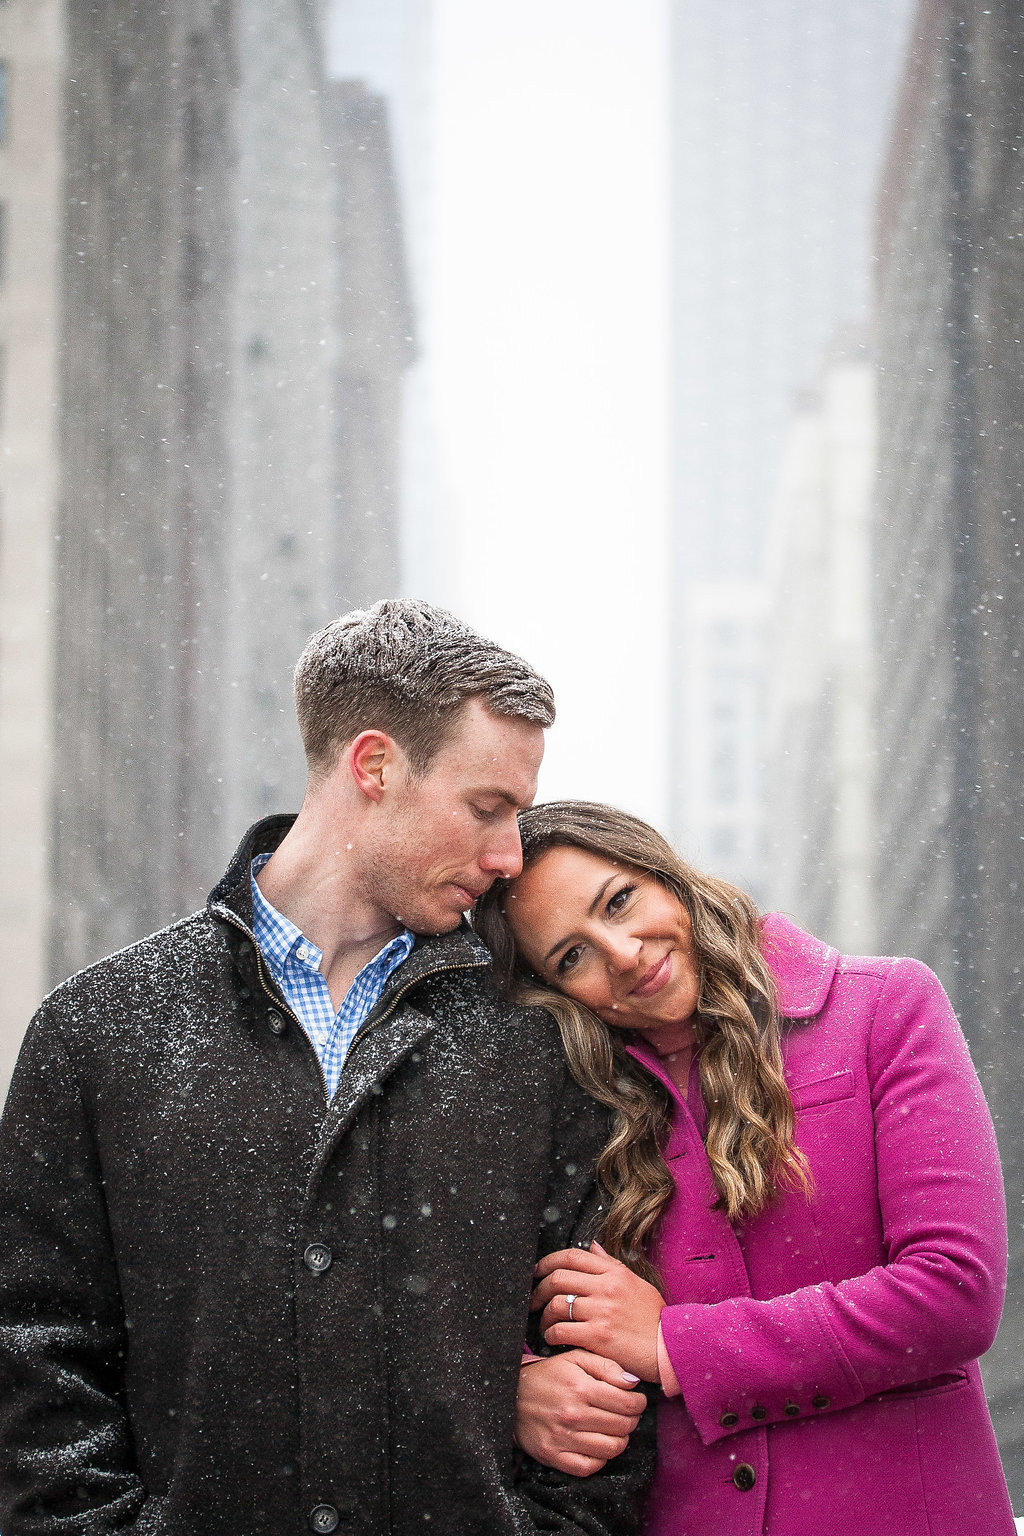 Millennium Park Chicago Illinois Winter Engagement Photographer Taylor Ingles 31